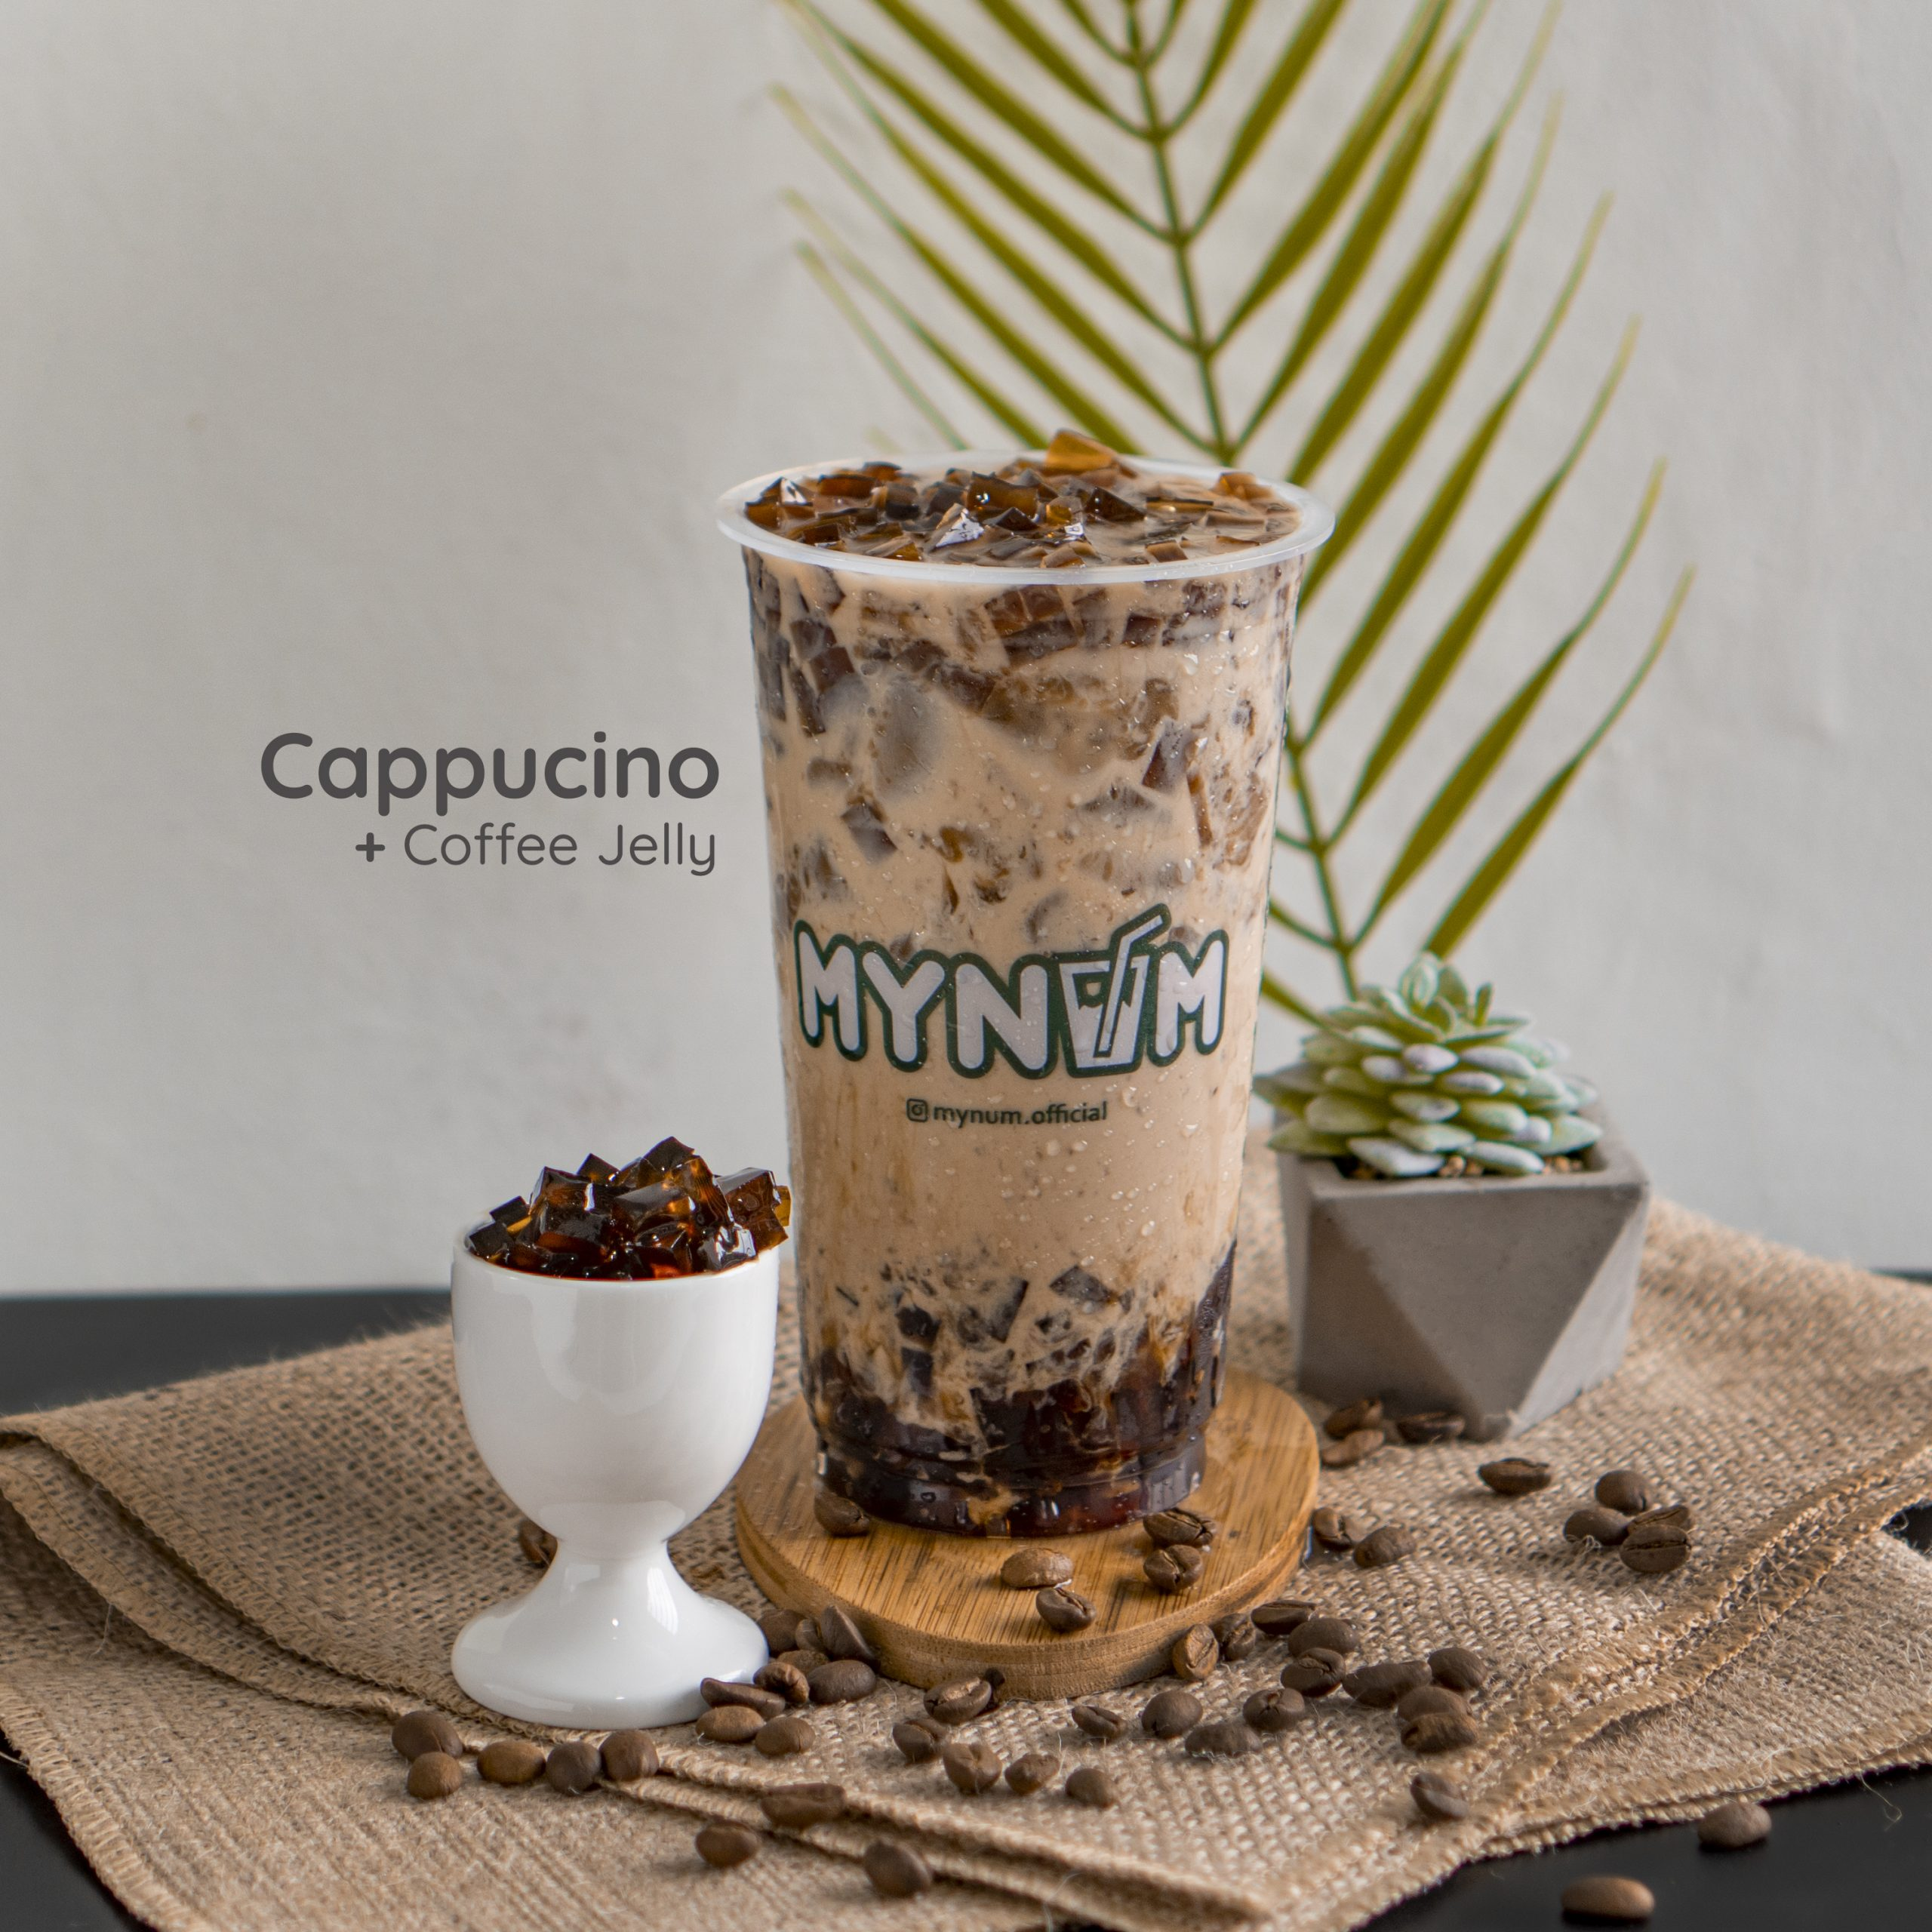 15. Cappucino With Coffee Jelly